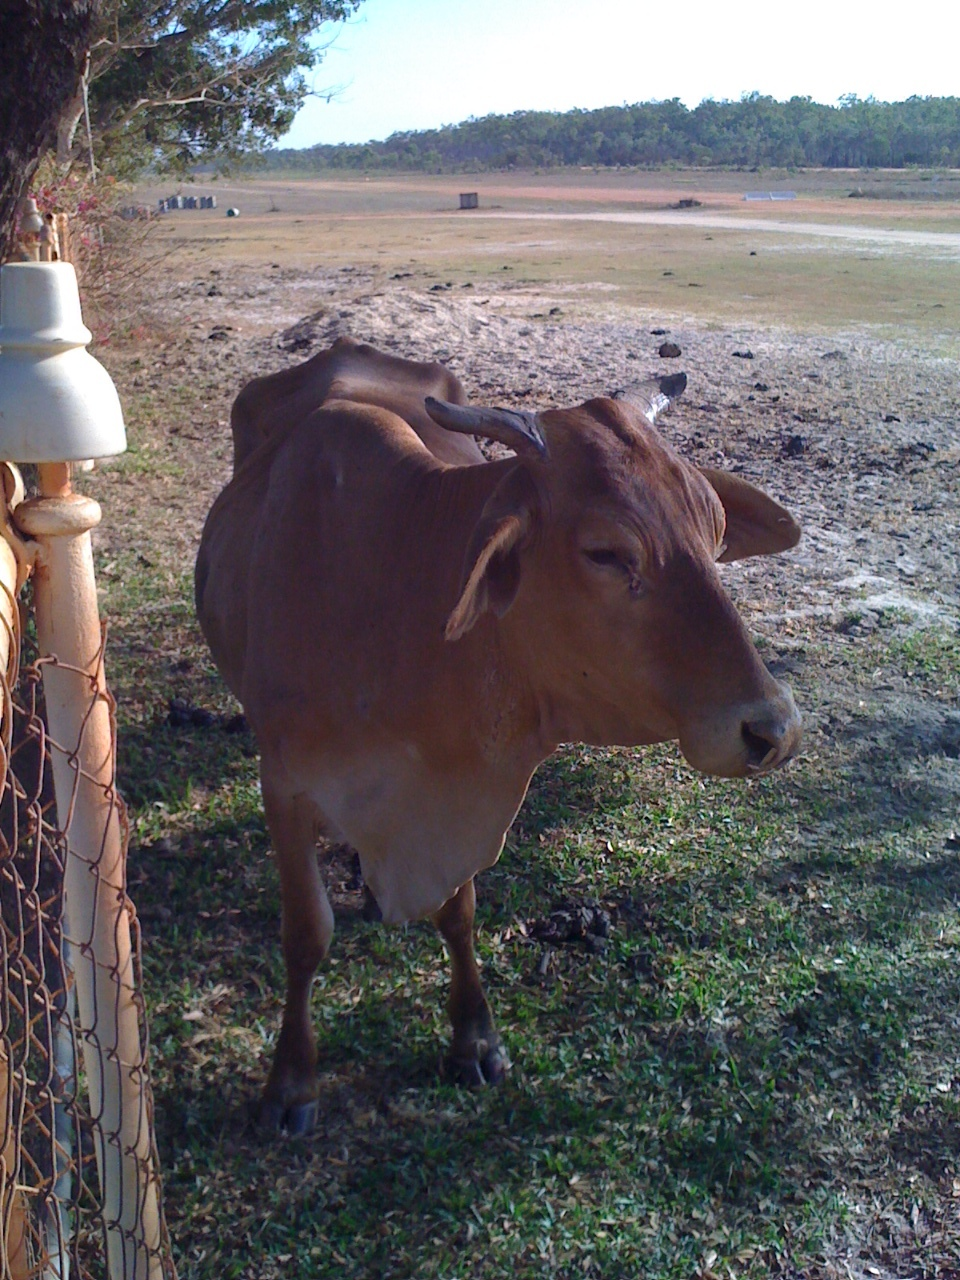 Brahmin cow near the runway at Musgrave Roadhouse, Cape York peninsula, Queensland, Australia